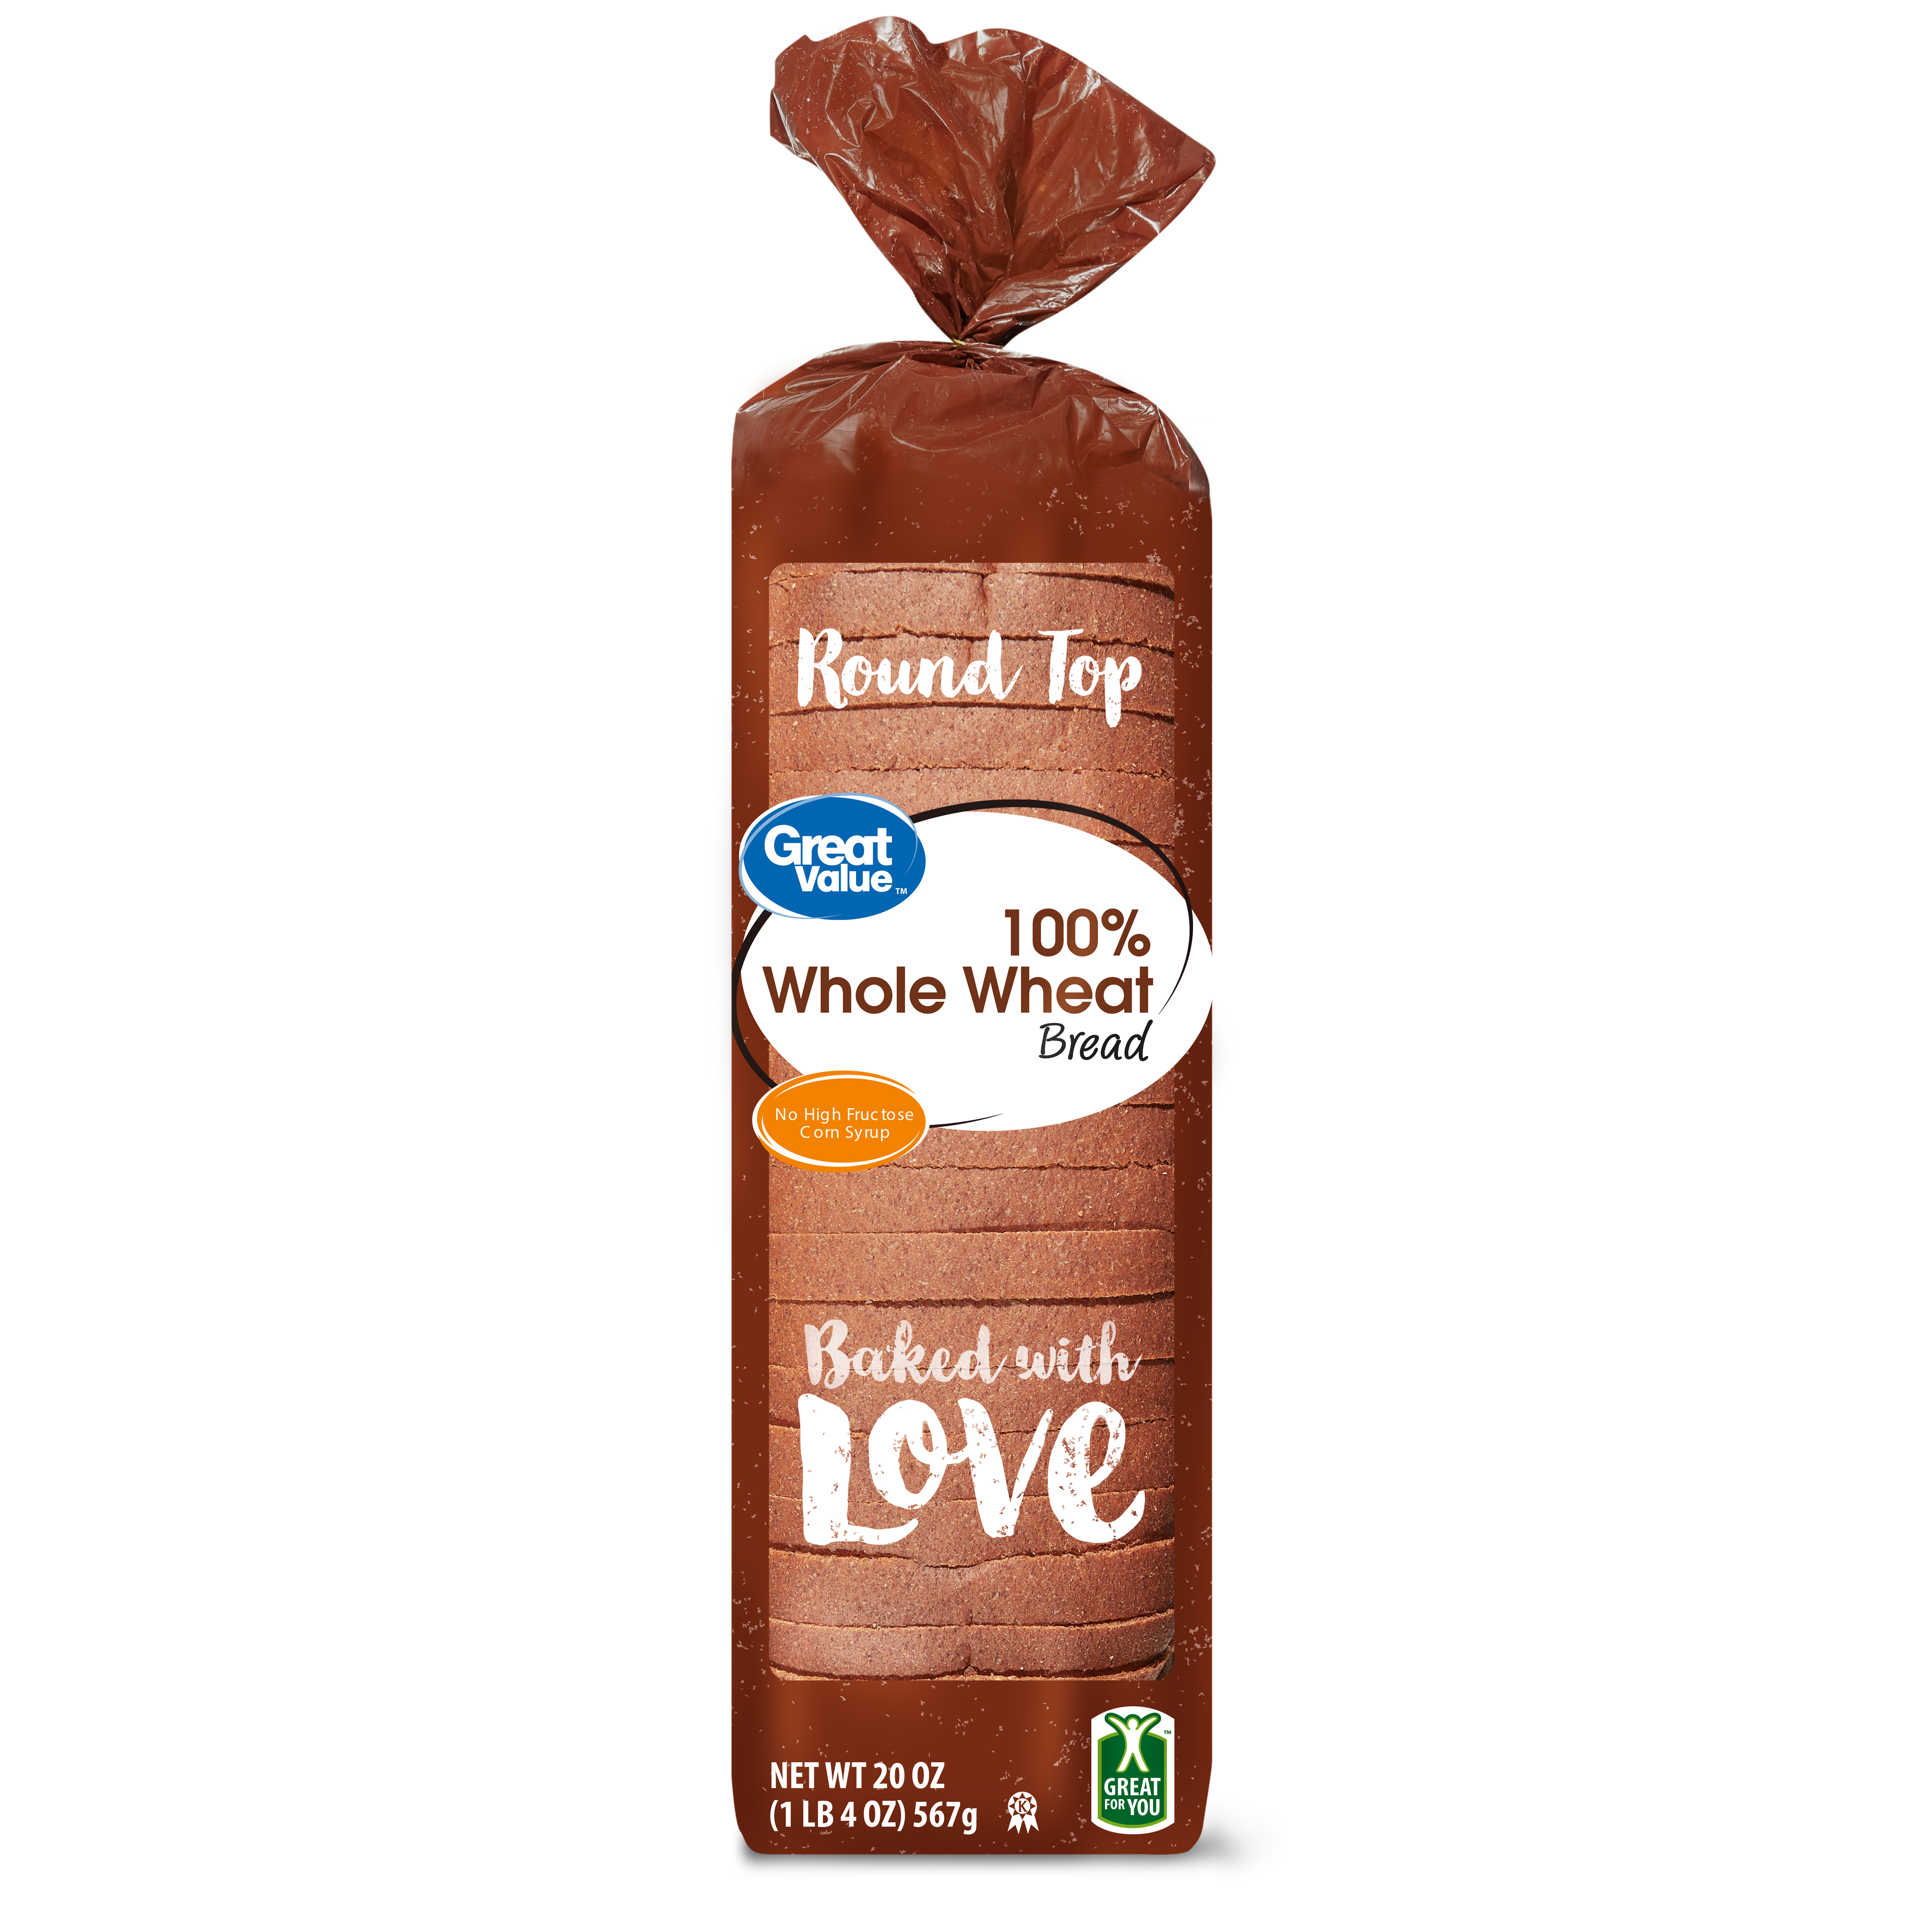 Great Value 100% Whole Wheat Bread, Round Top, 20 oz